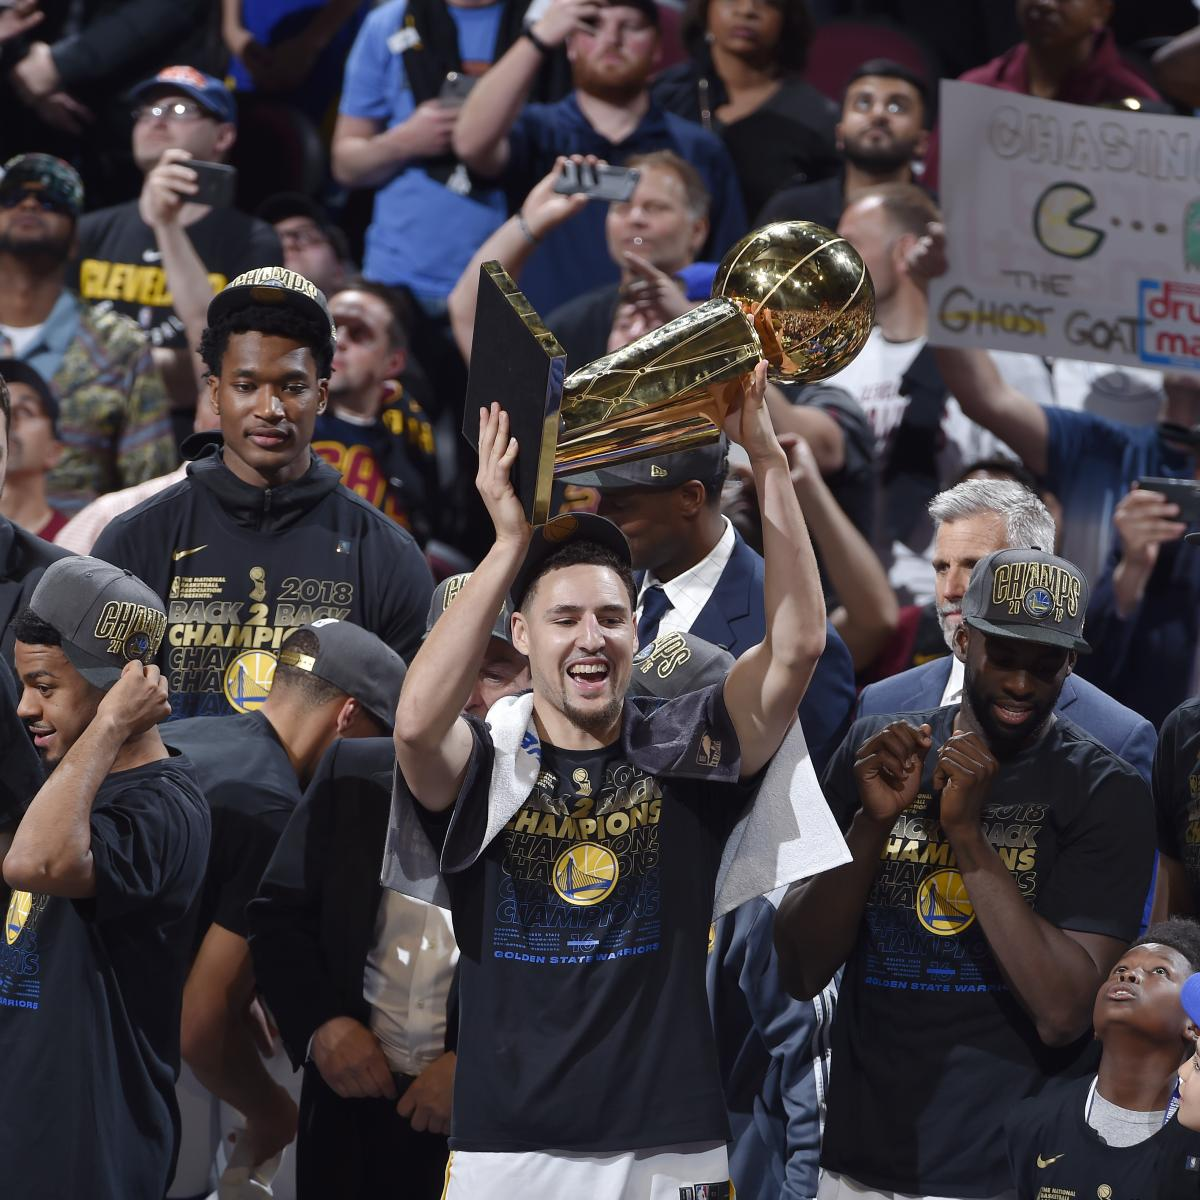 Warriors Vs. Cavaliers: 2018 Finals Stats And 2019 Title